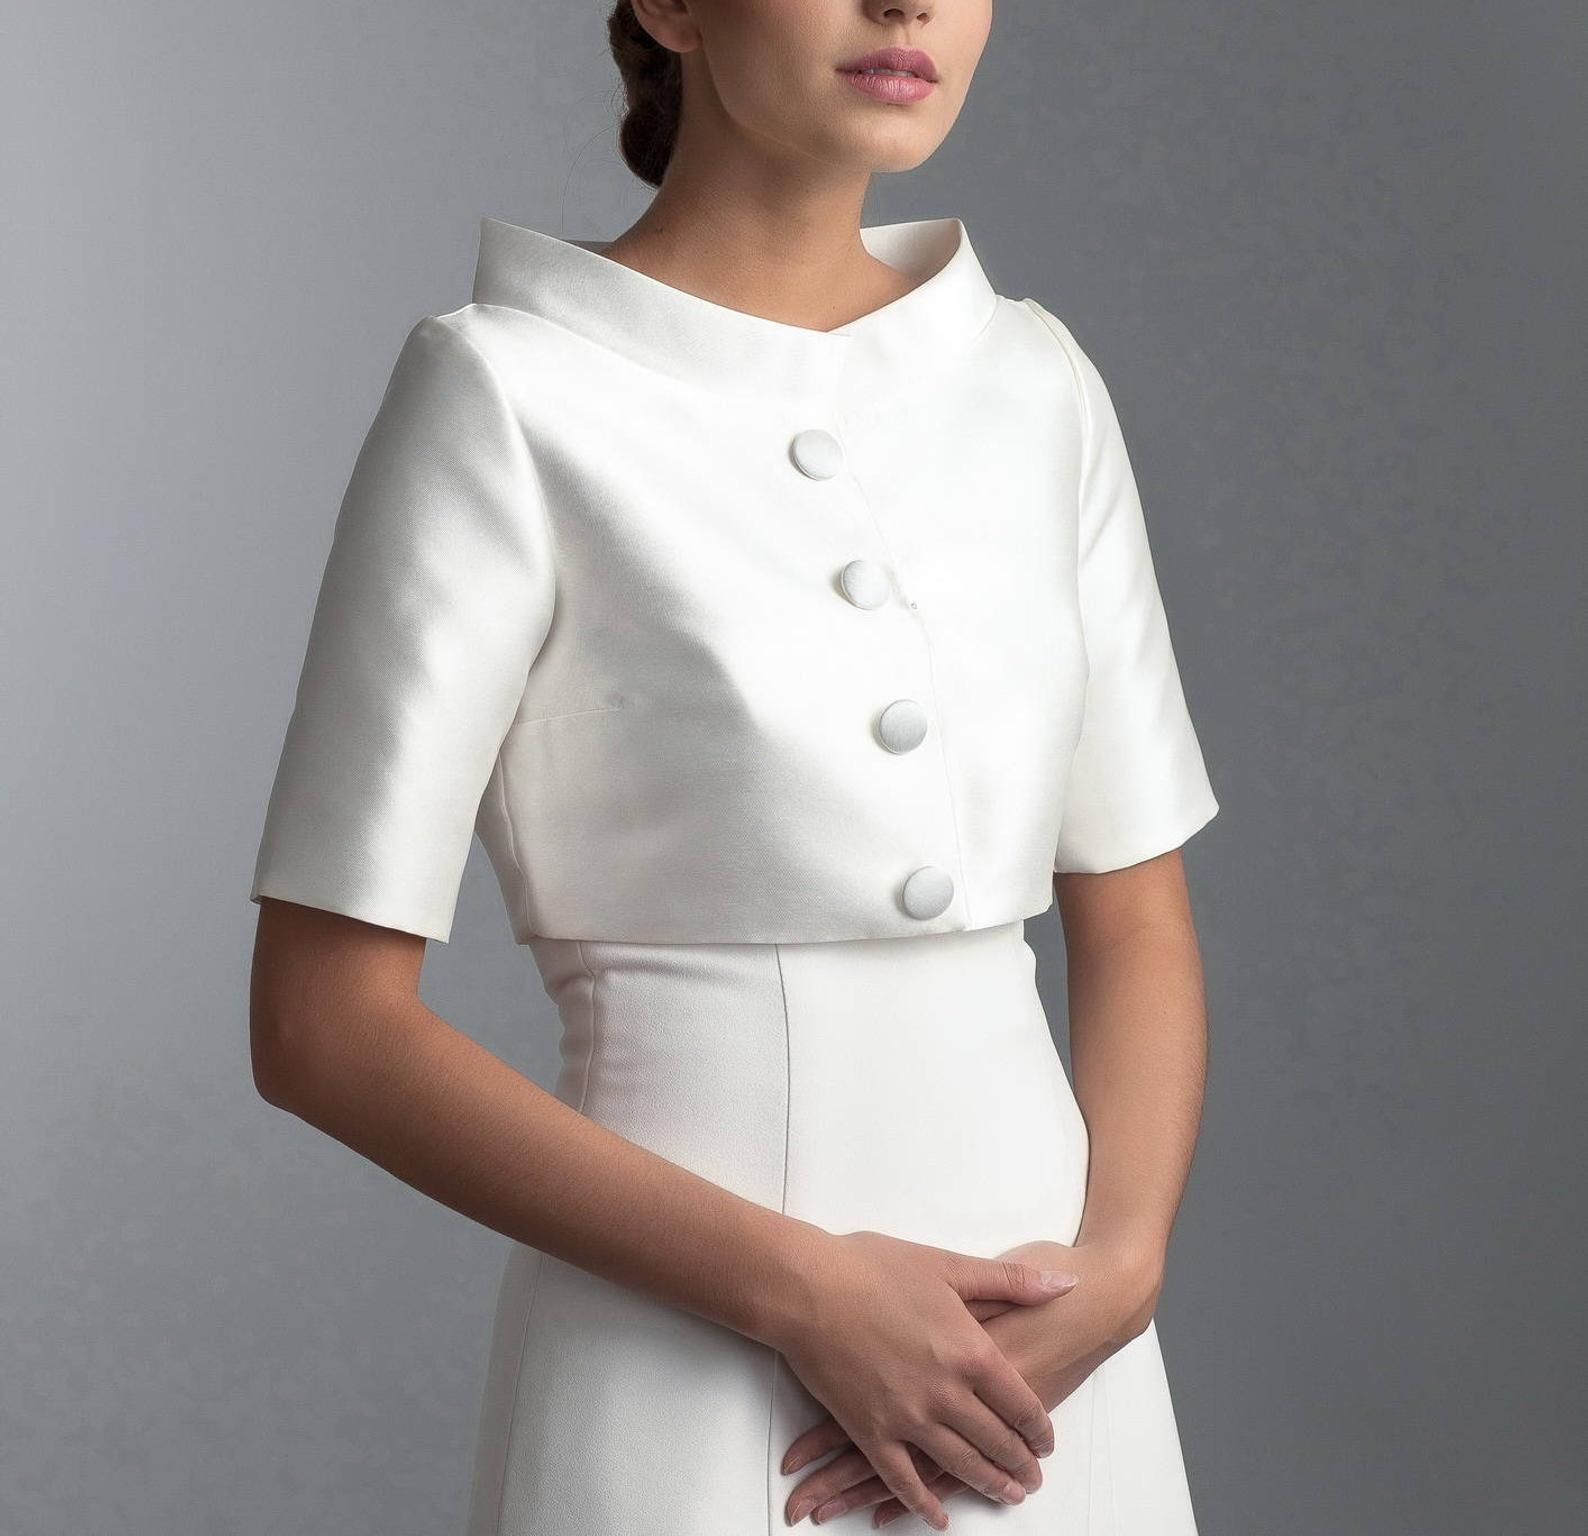 Bridal jacket with short sleeves and collar, Wedding jacket, Mikado jacket, Collar jacket